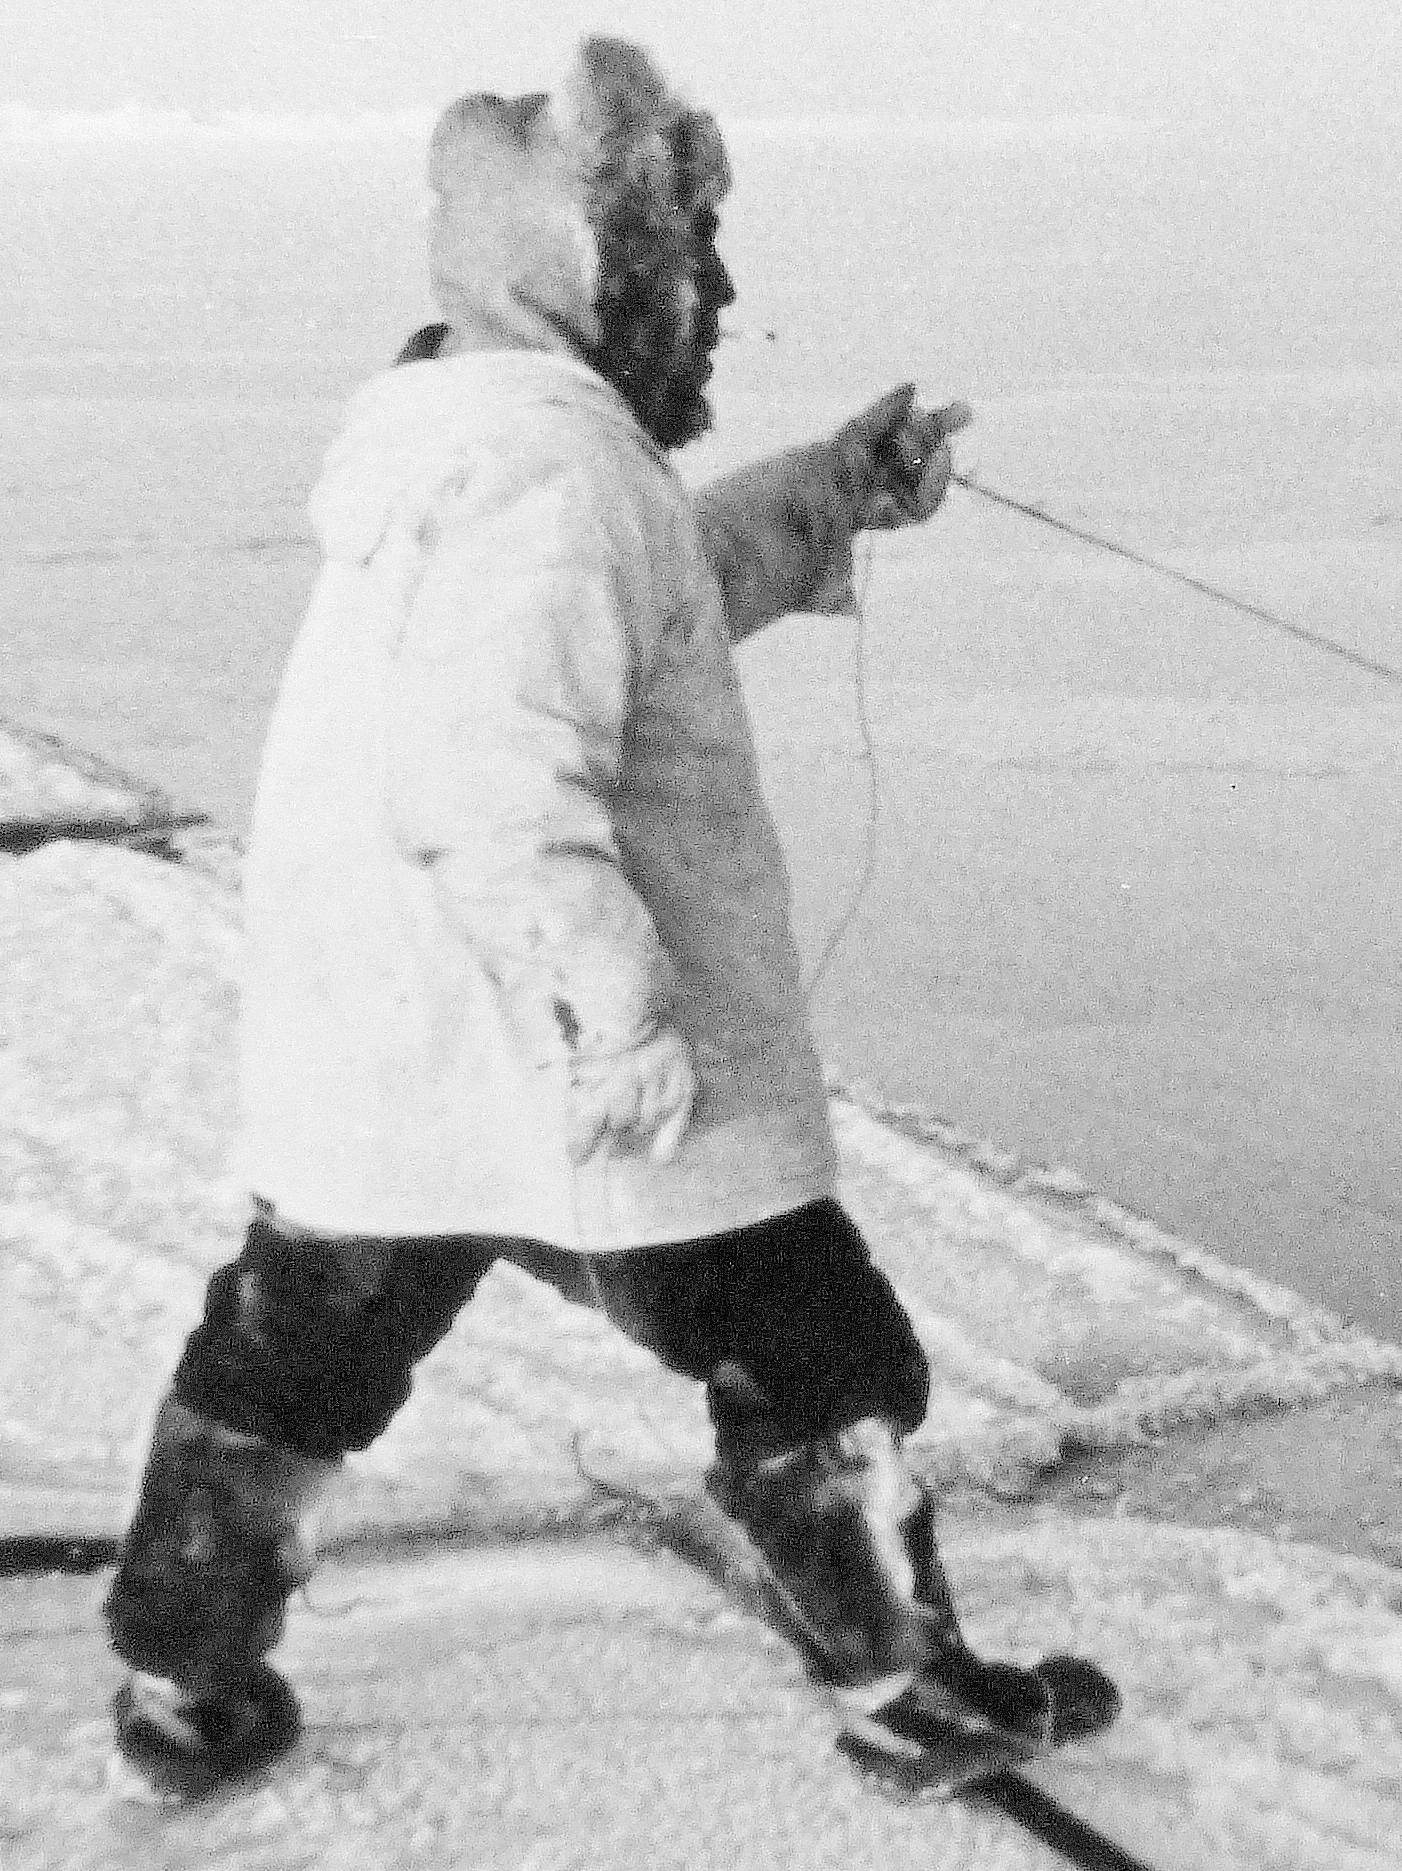 The late Weir Negovanna hunting on the sea ice near Wainwright, dressed in his best caribou hide gear, including boots with waterproof sealskin soles (1965 photos).